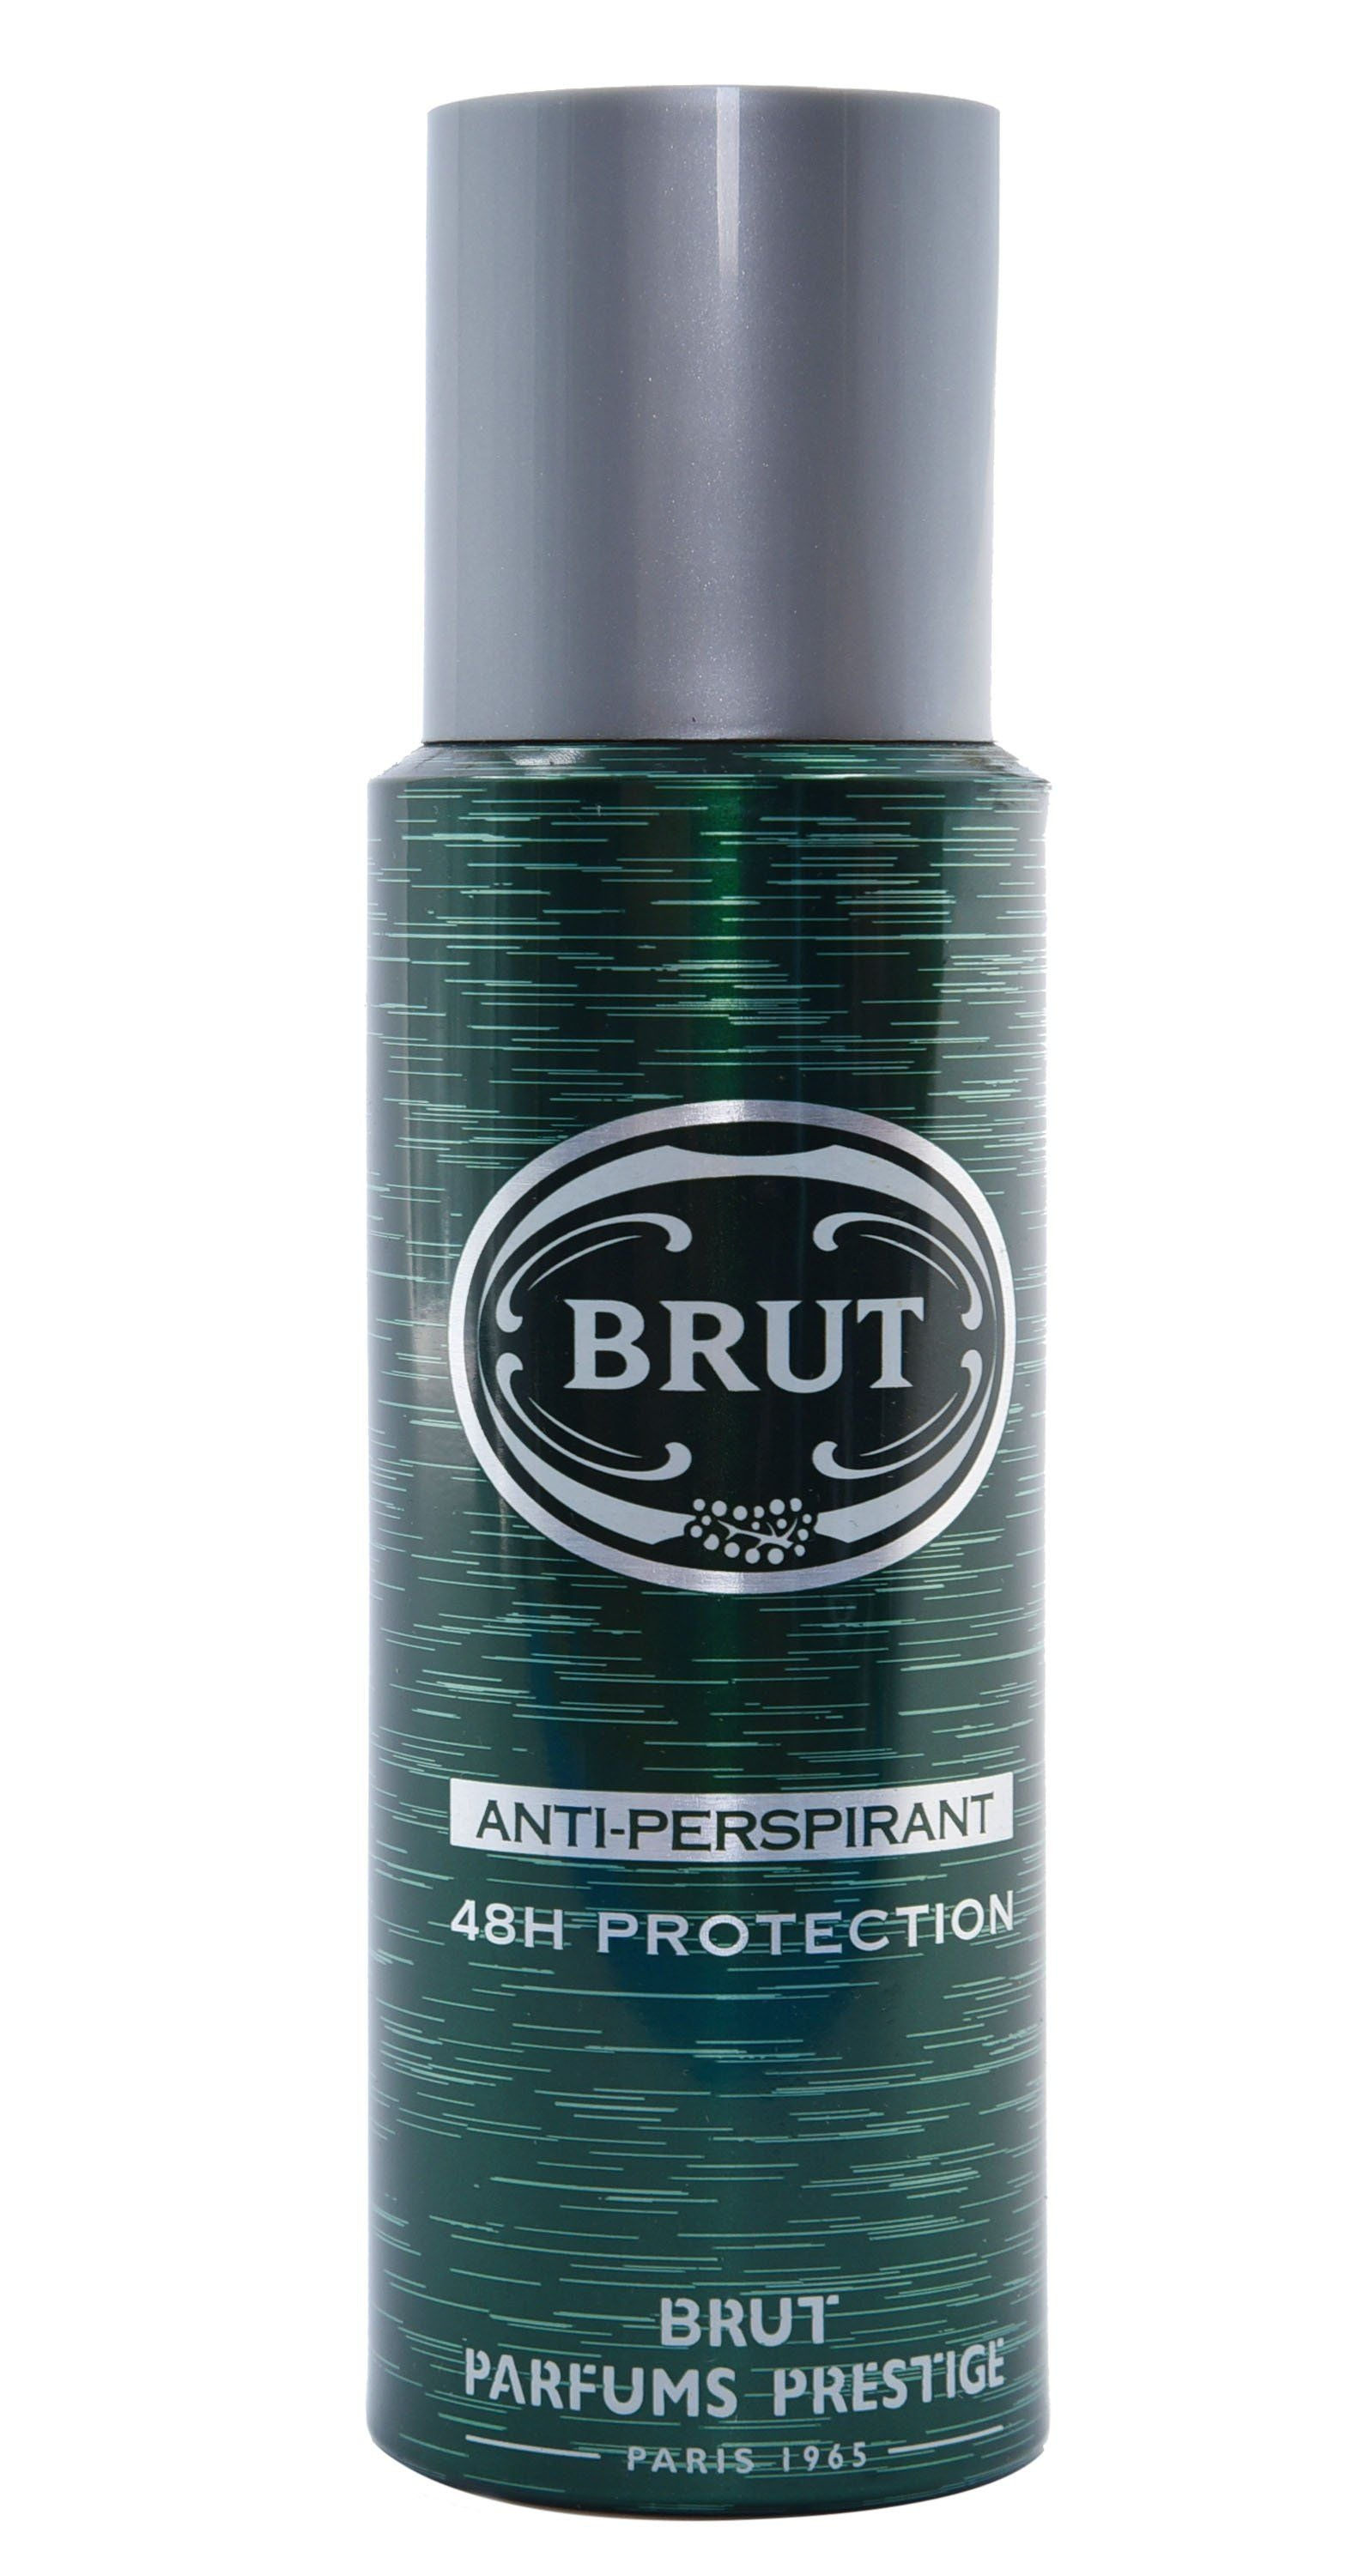 Brut Body Spray for Men AP Original 200ml - Pack of 6